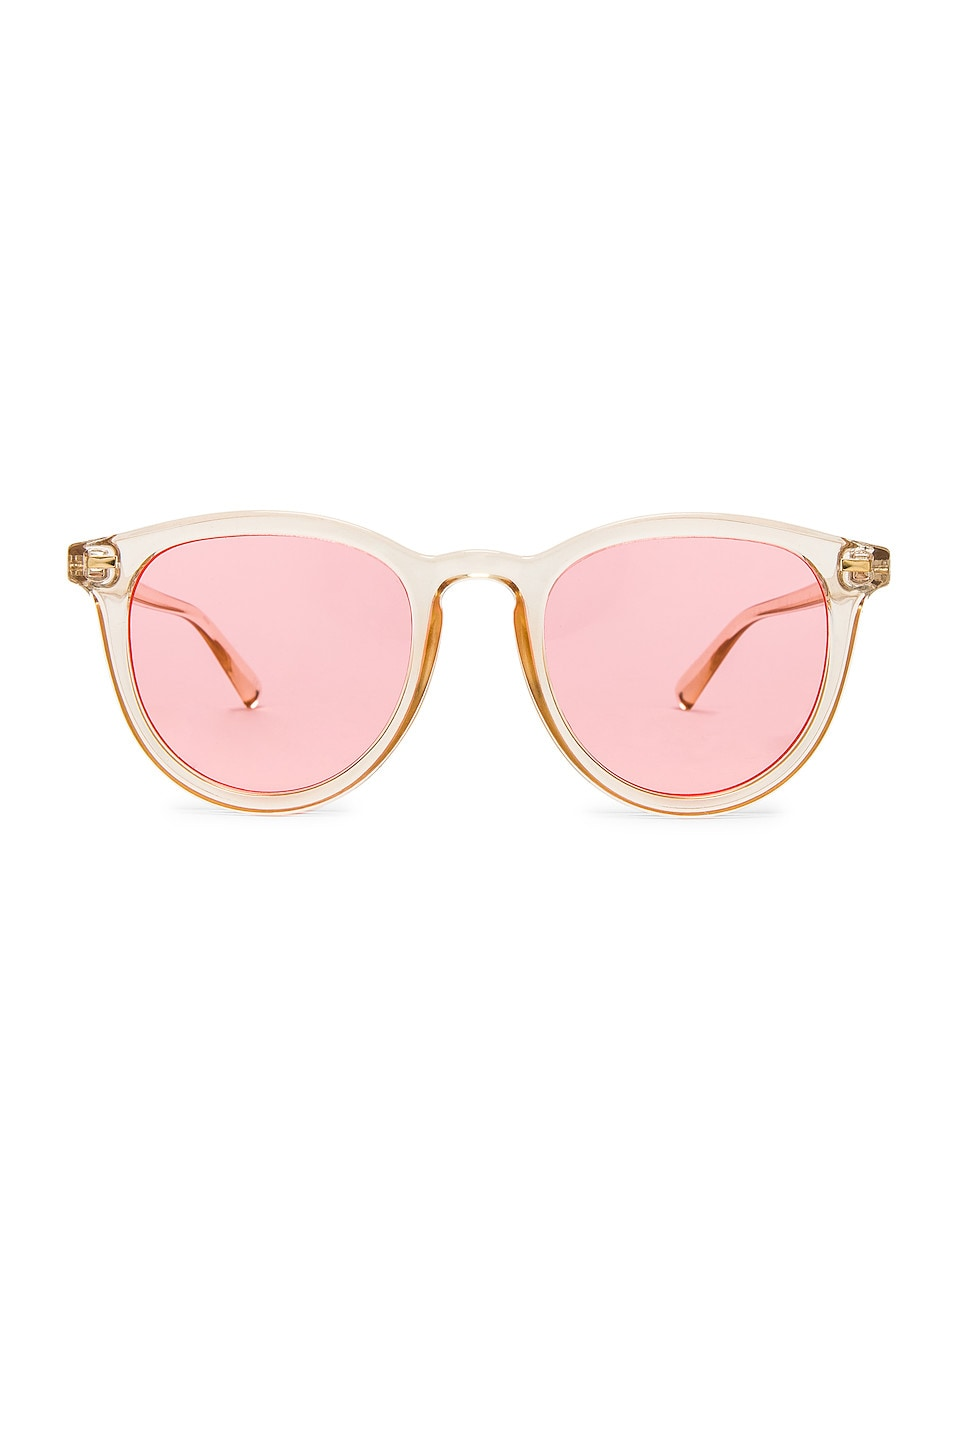 Le Specs Fire Starter in Blonde & Coral Tint